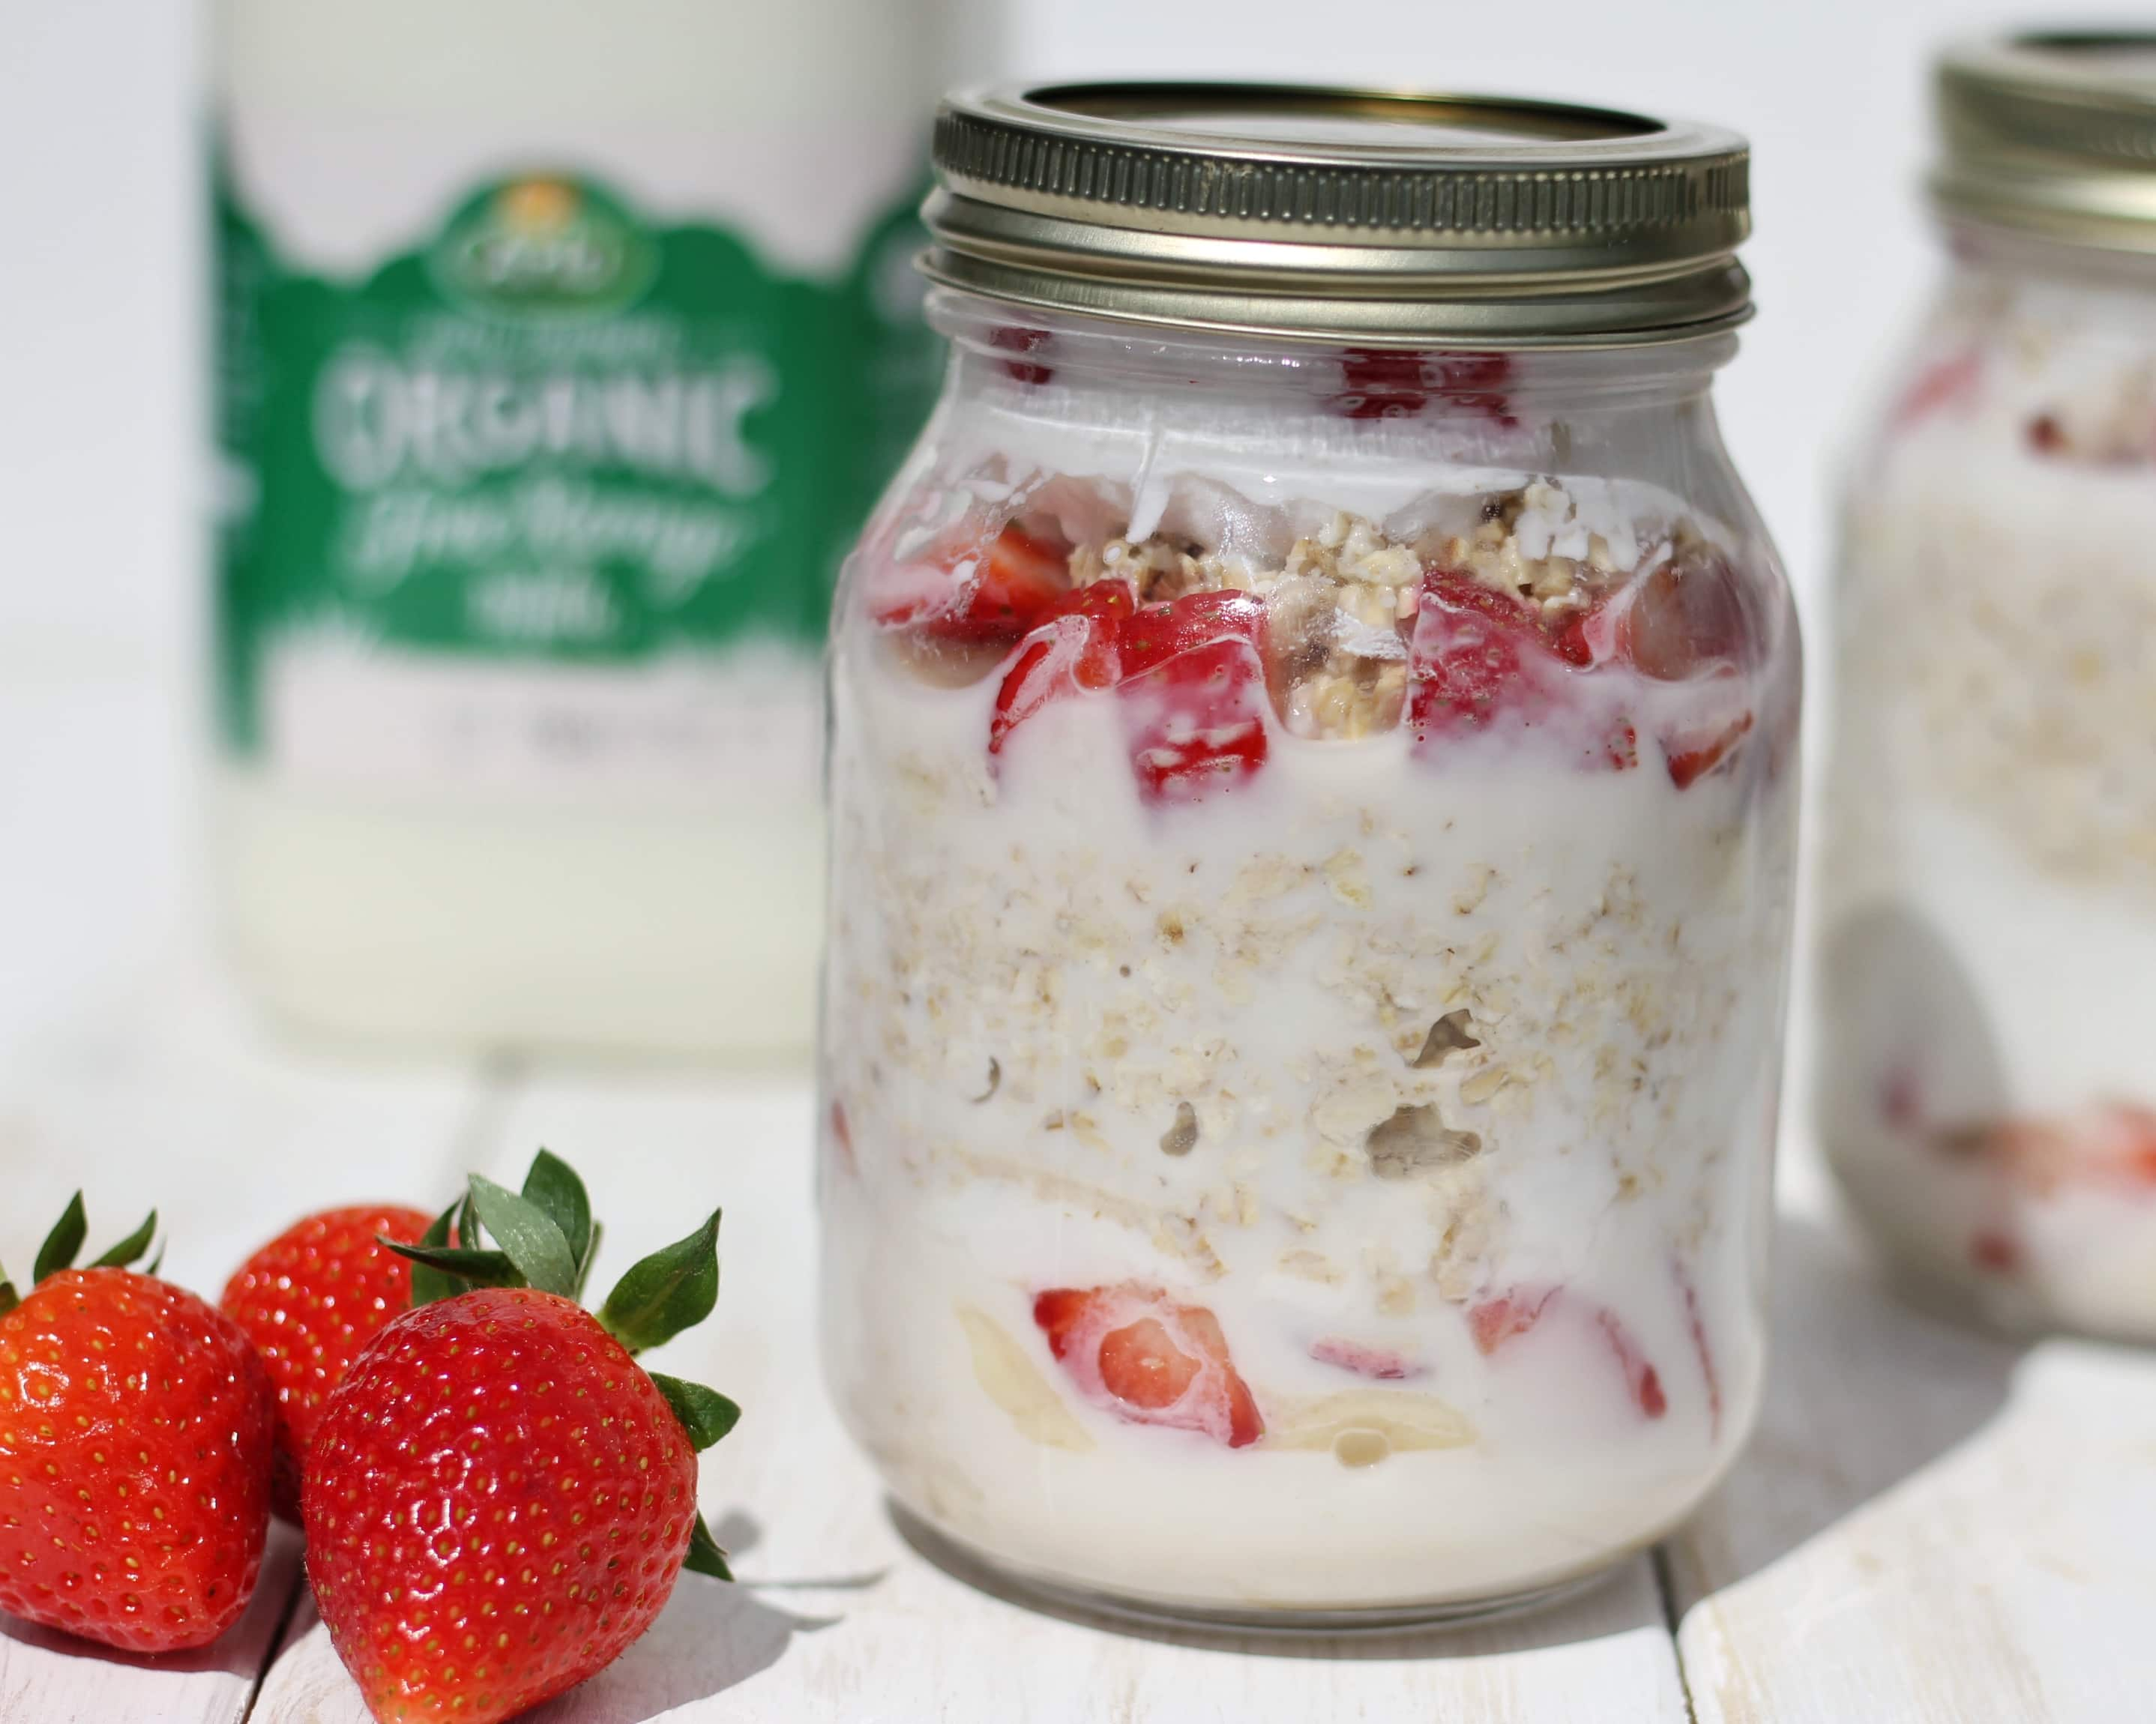 Overnight oats with Arla organic milk